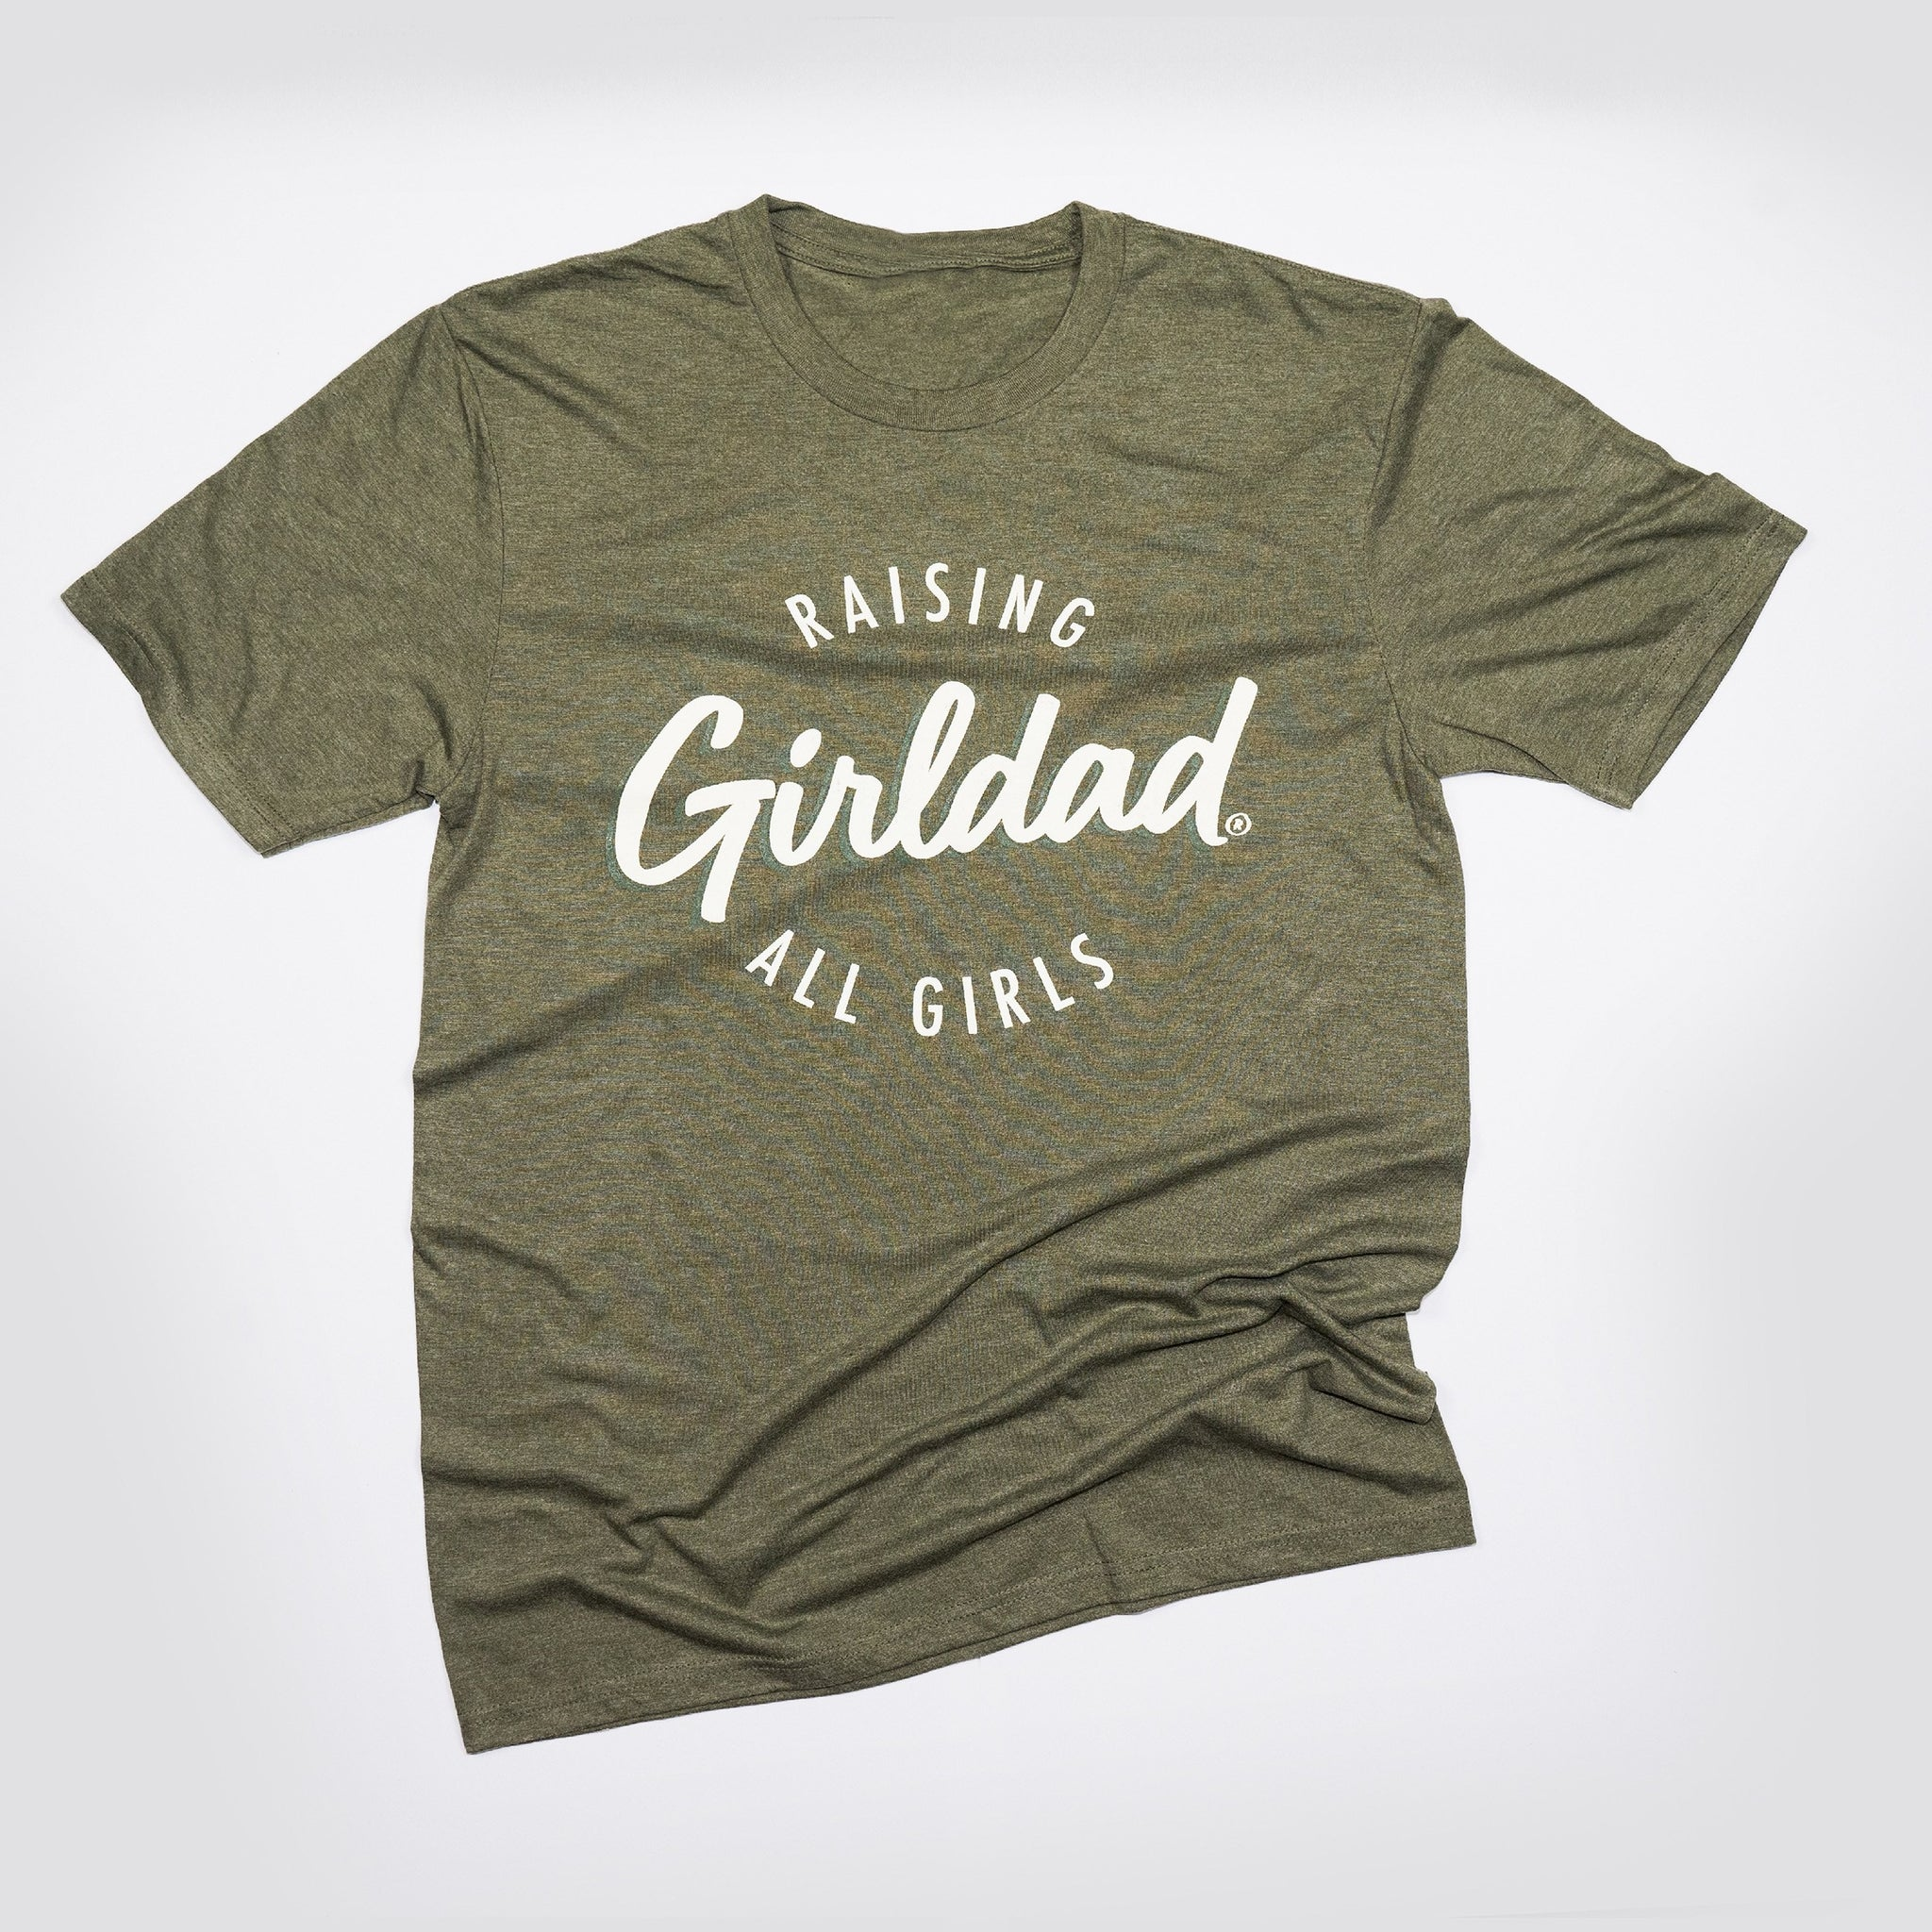 Girldad® Raising All Girls Mens Crew Tee Military